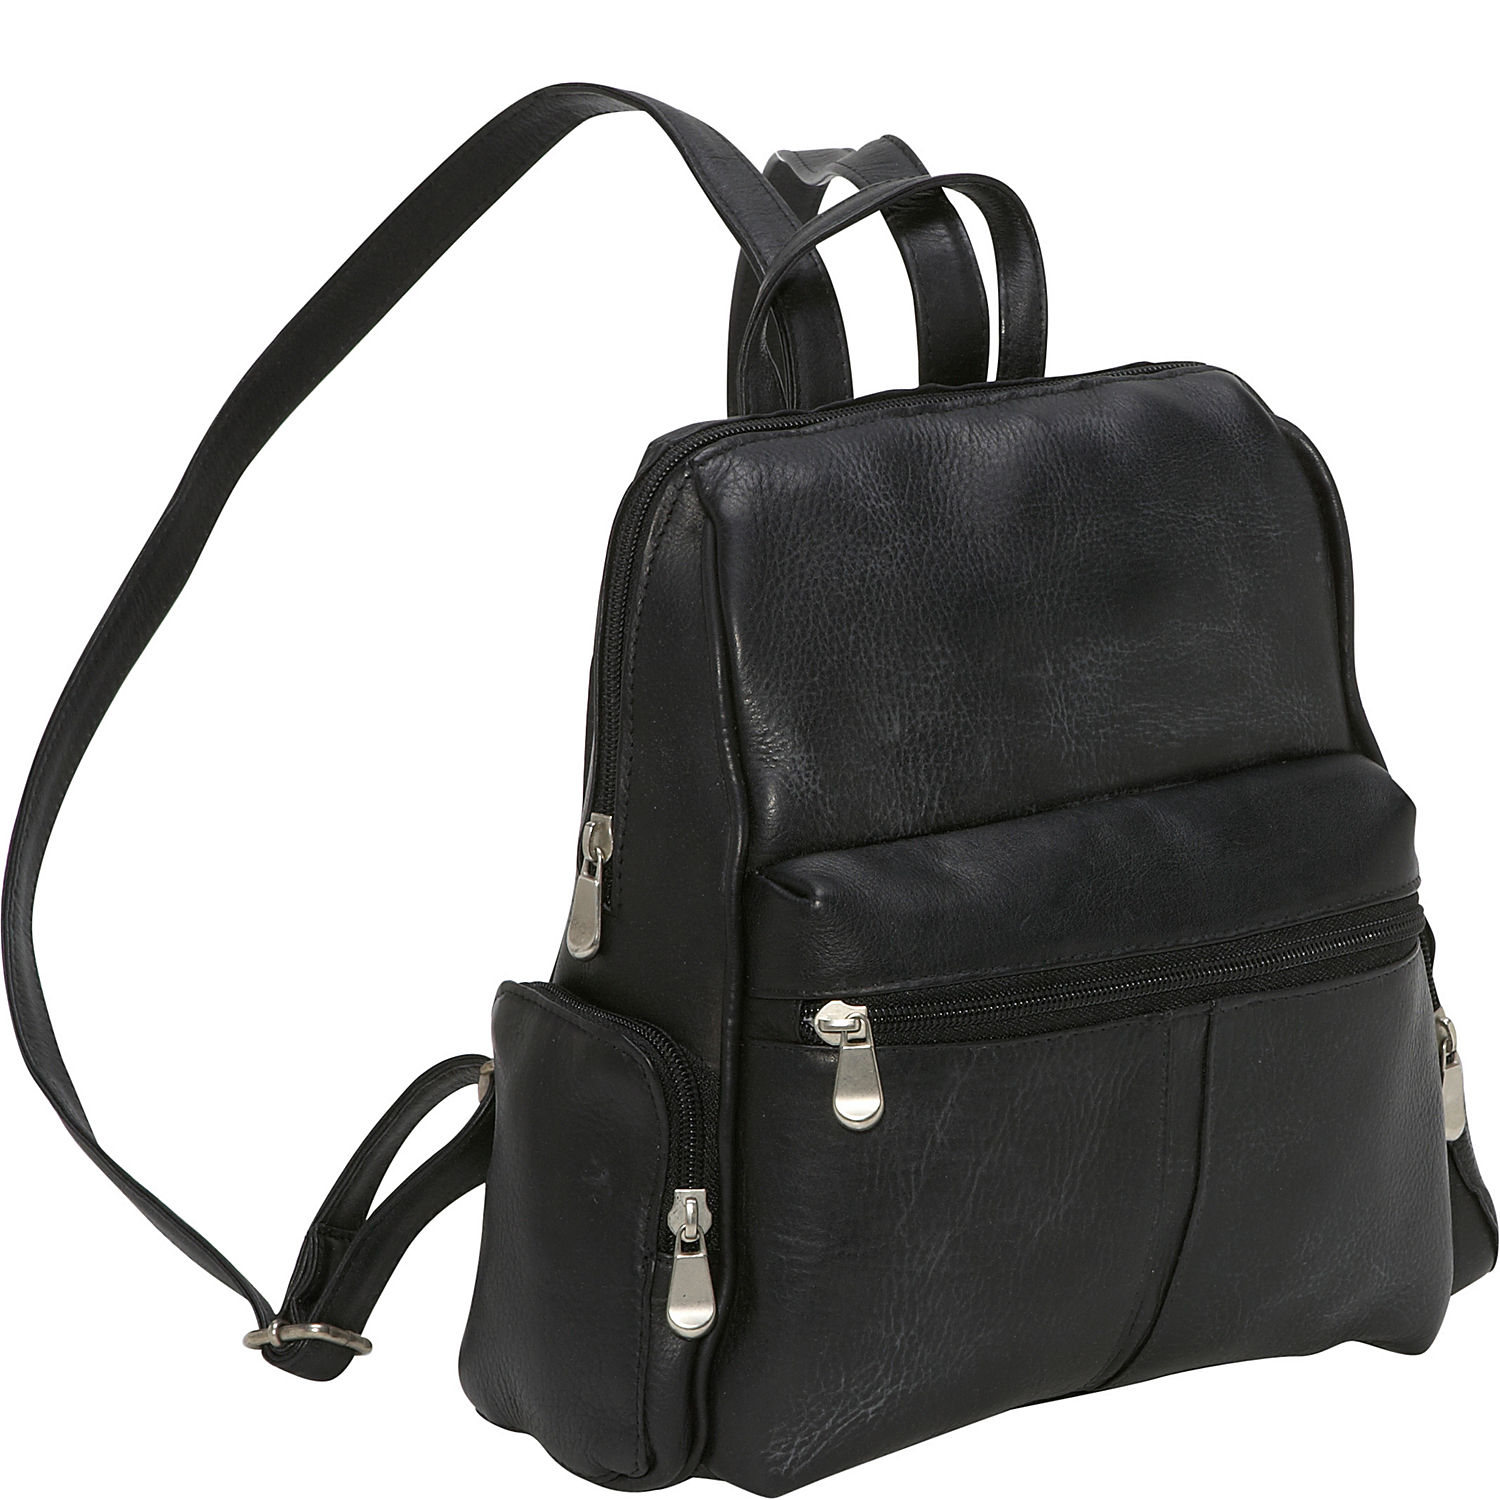 Shop for womens backpack purses online at Target. Free shipping on purchases over $35 and save 5% every day with your Target REDcard.